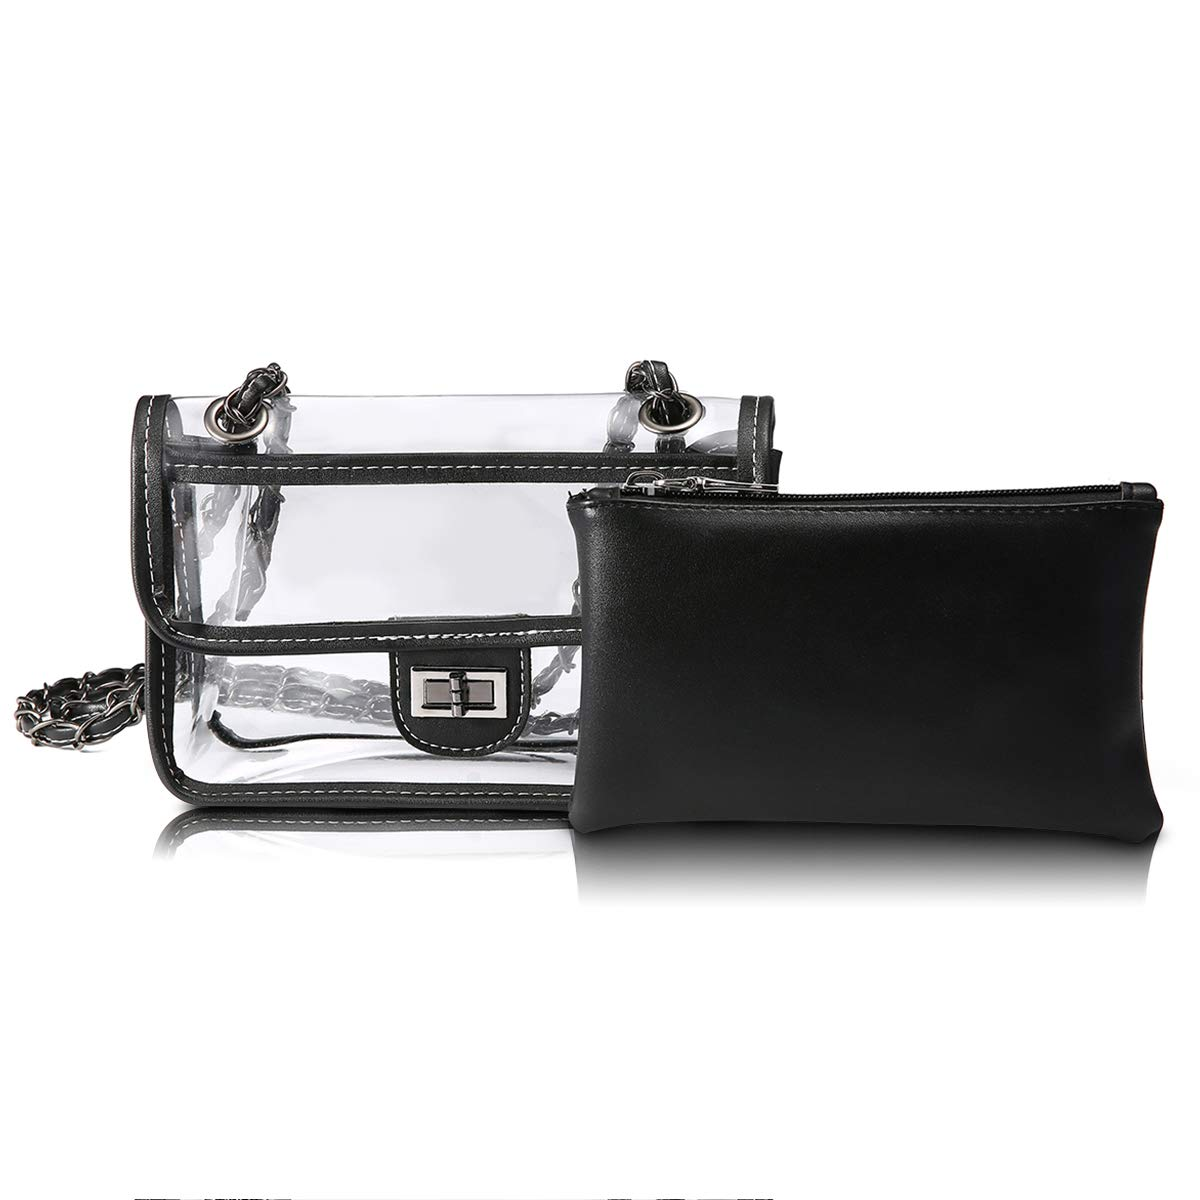 CHARMINER Clear Purse Cross Body Messenger Bag Adjustable Strap Toiletry Bag 2PCS Waterproof Shoulder Bag for Cosmetics Makeup and Travel NFL PGA Stadium Approved Black Large